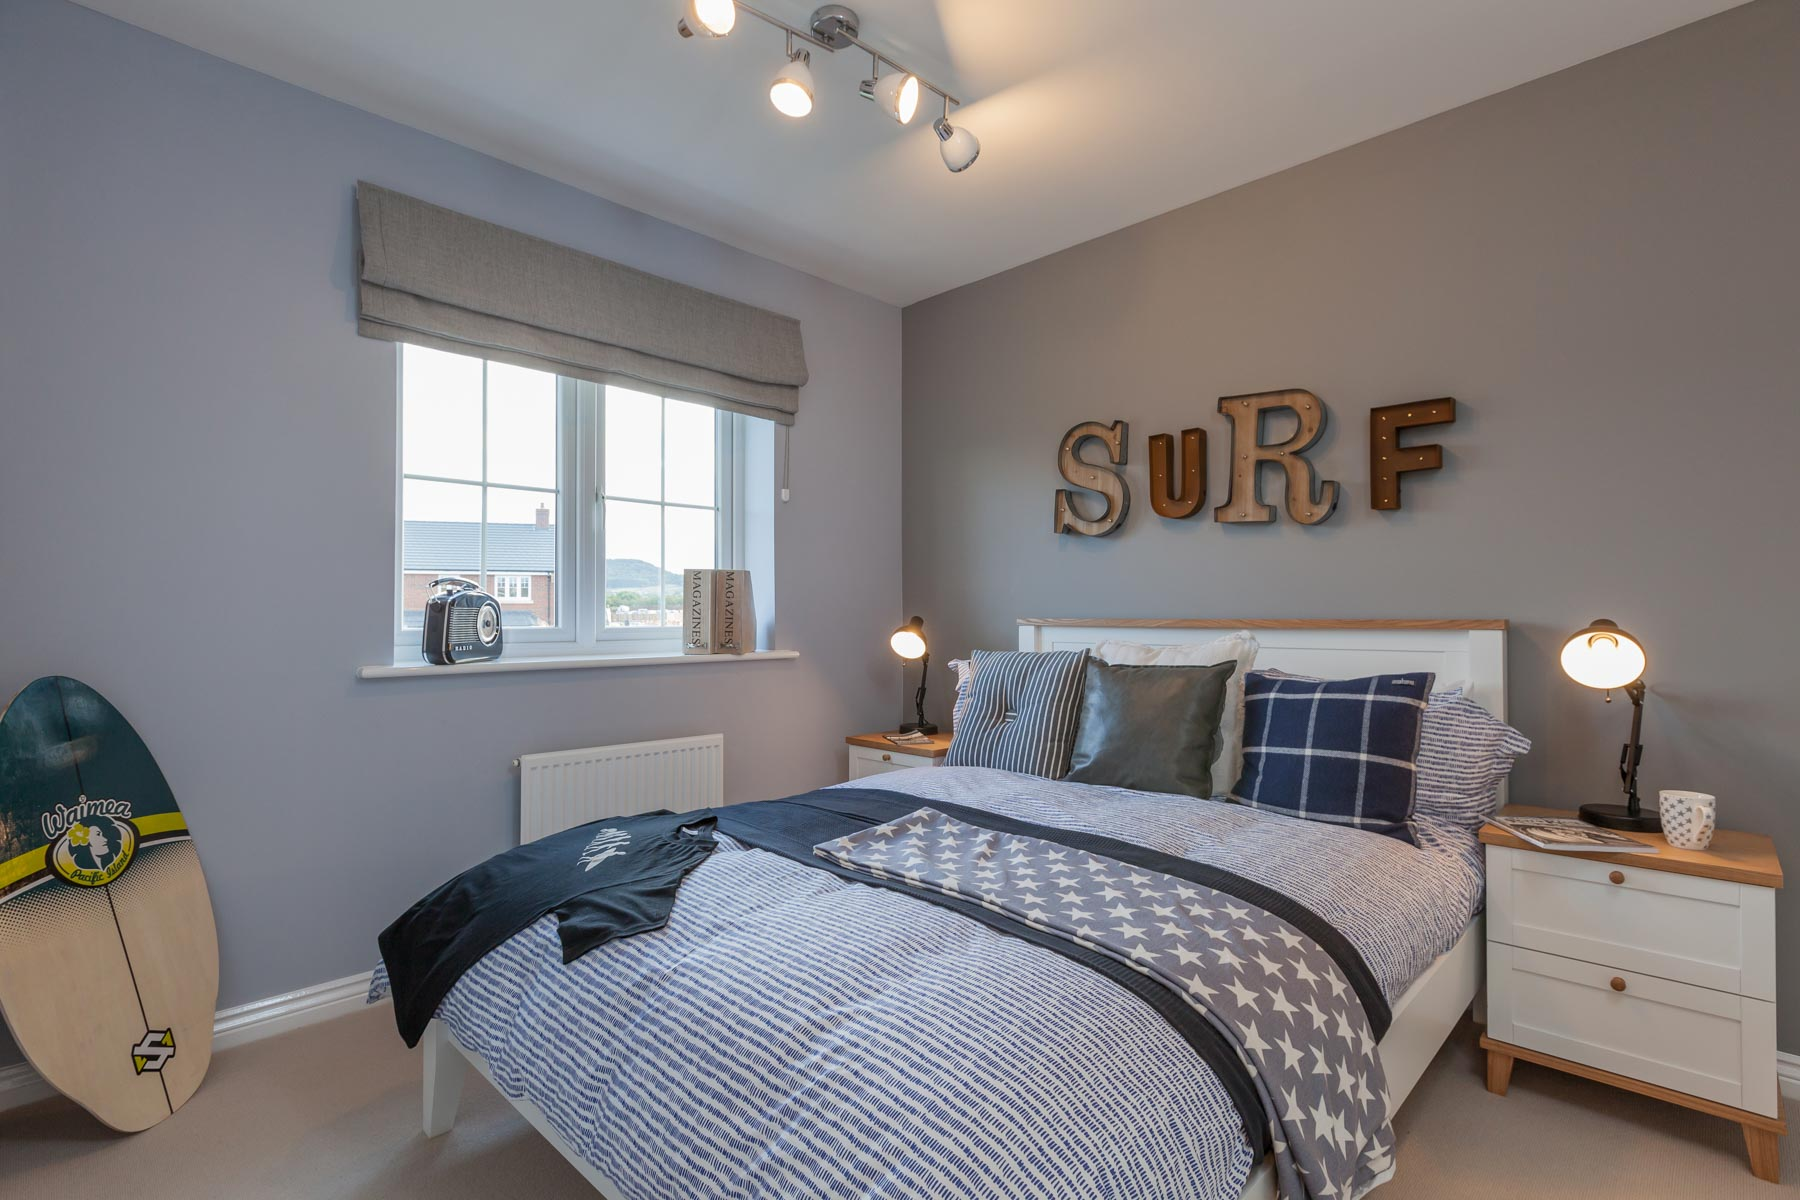 TW Exeter - Sherford - The Fir example bedroom 4